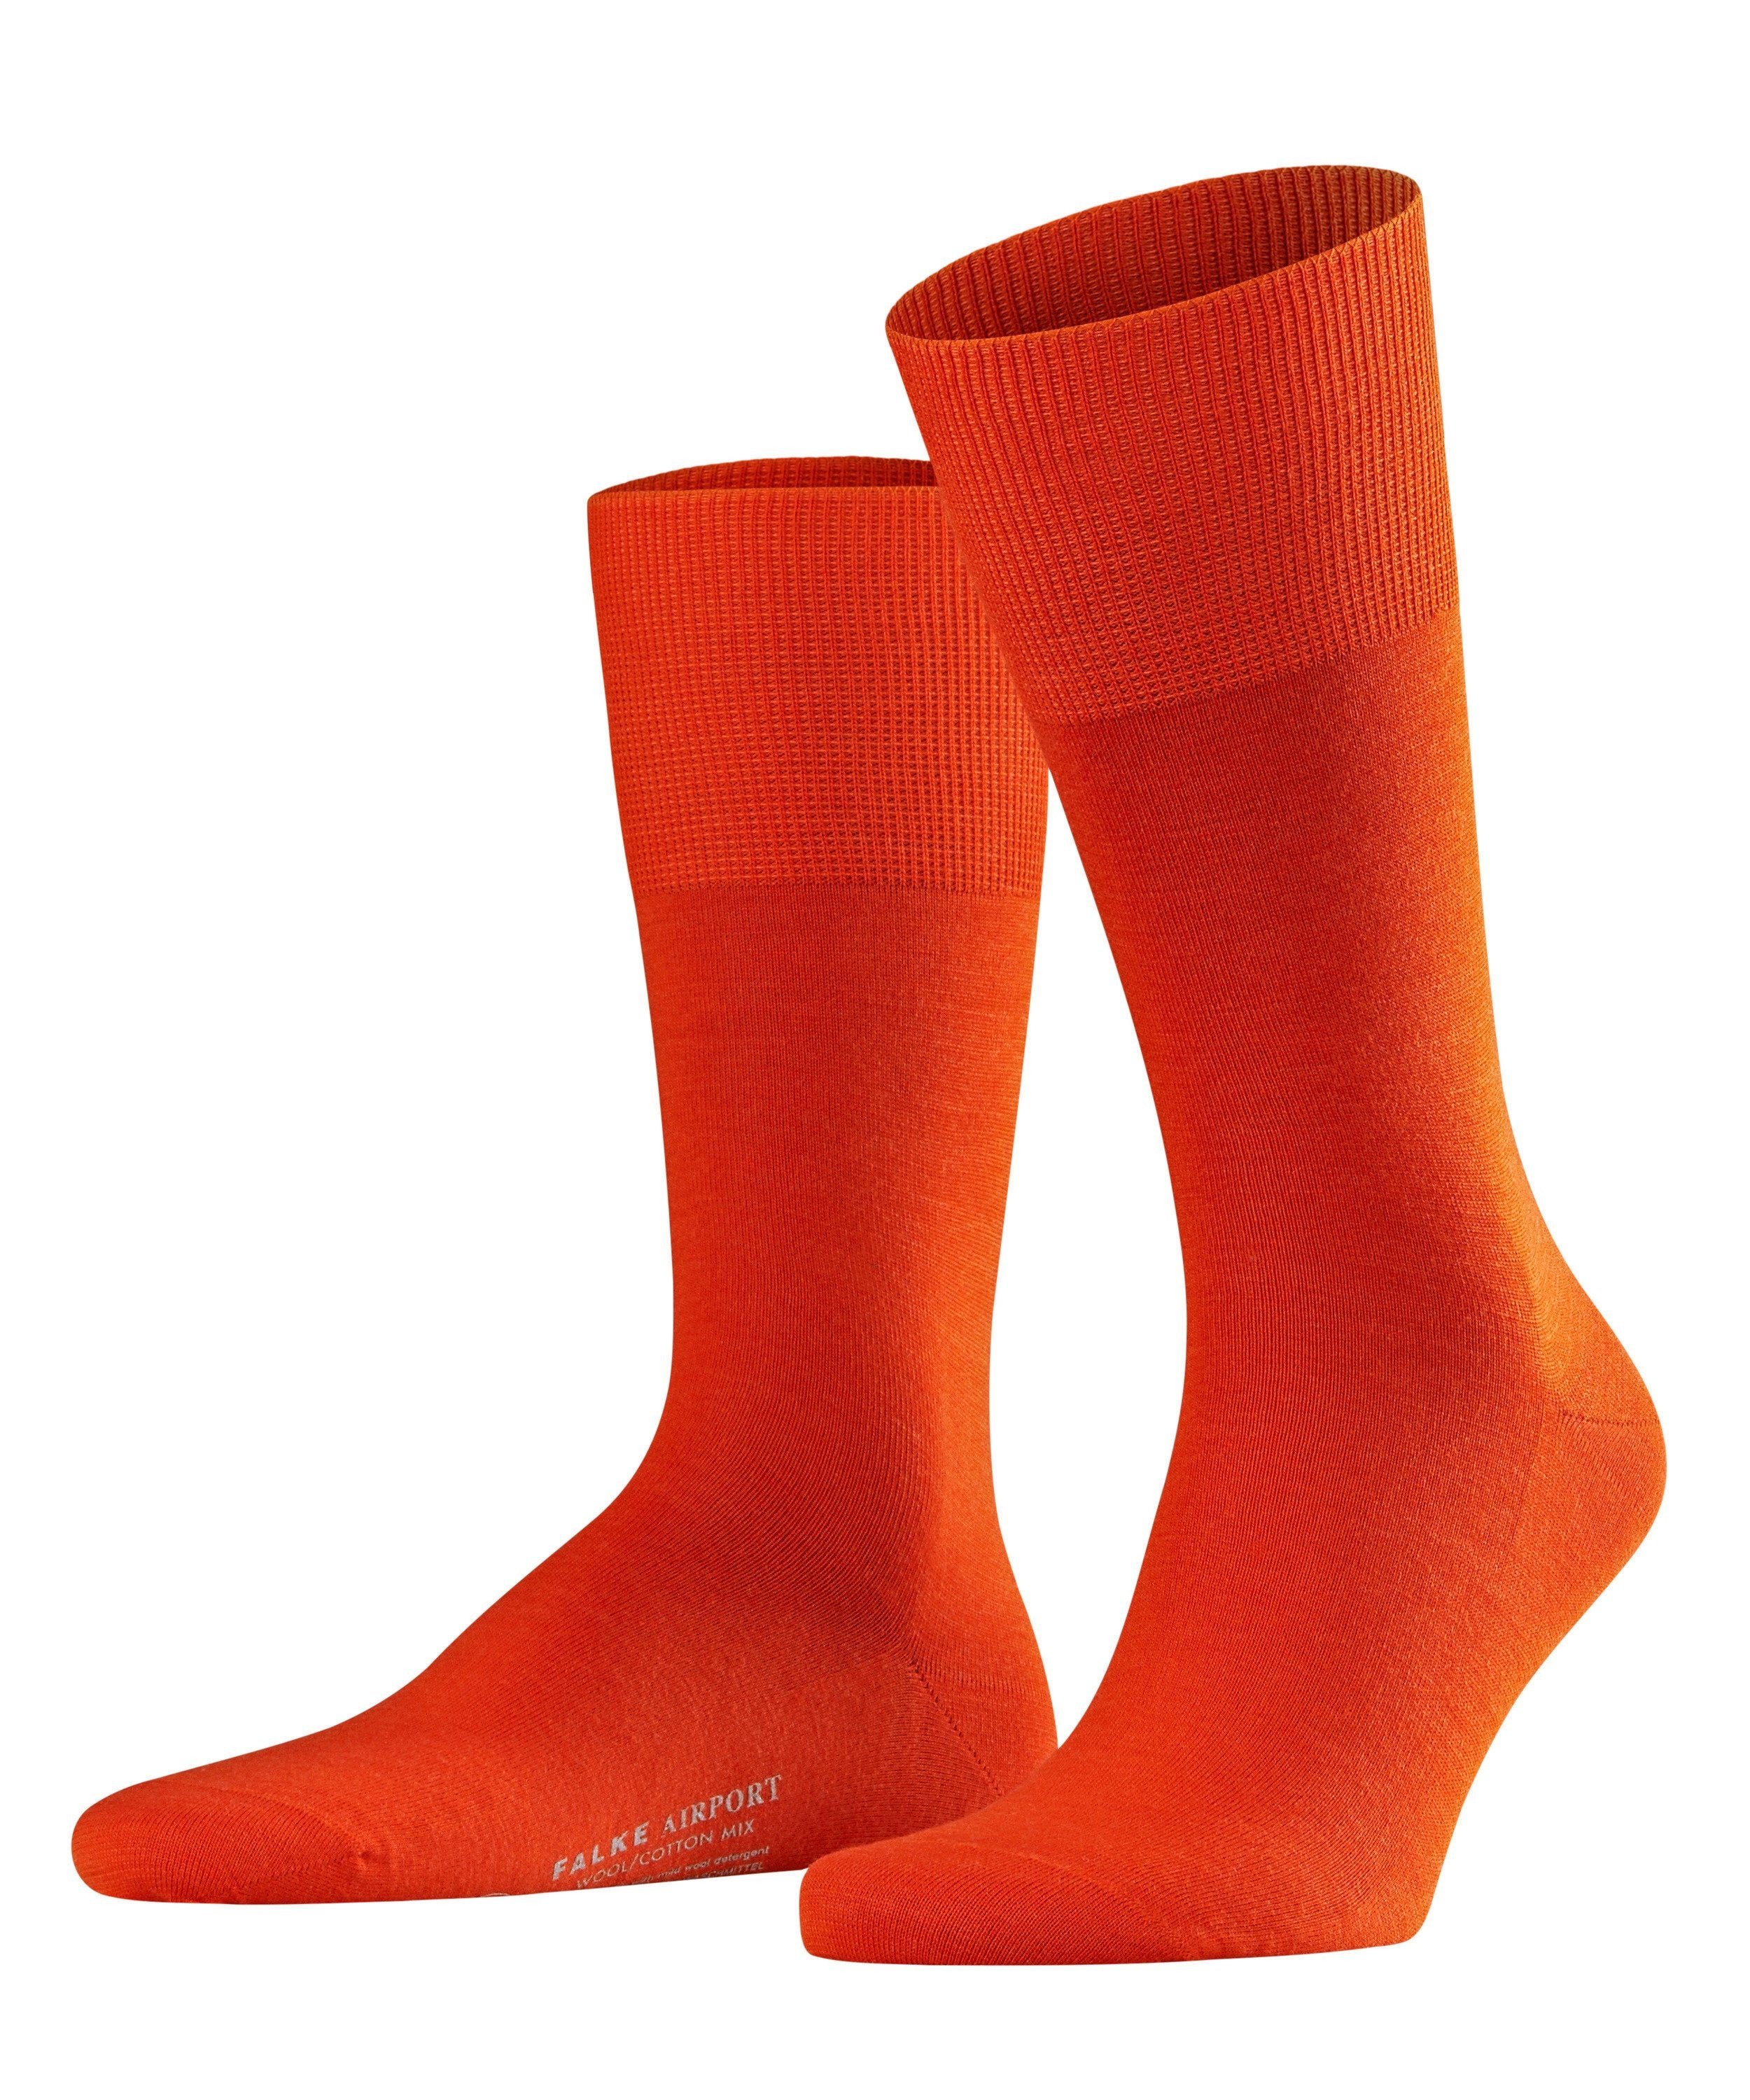 "Chaussette Homme - Laine & Coton - Falke Men ""Airport City"" 14435 - Orange Ziegel 8095"